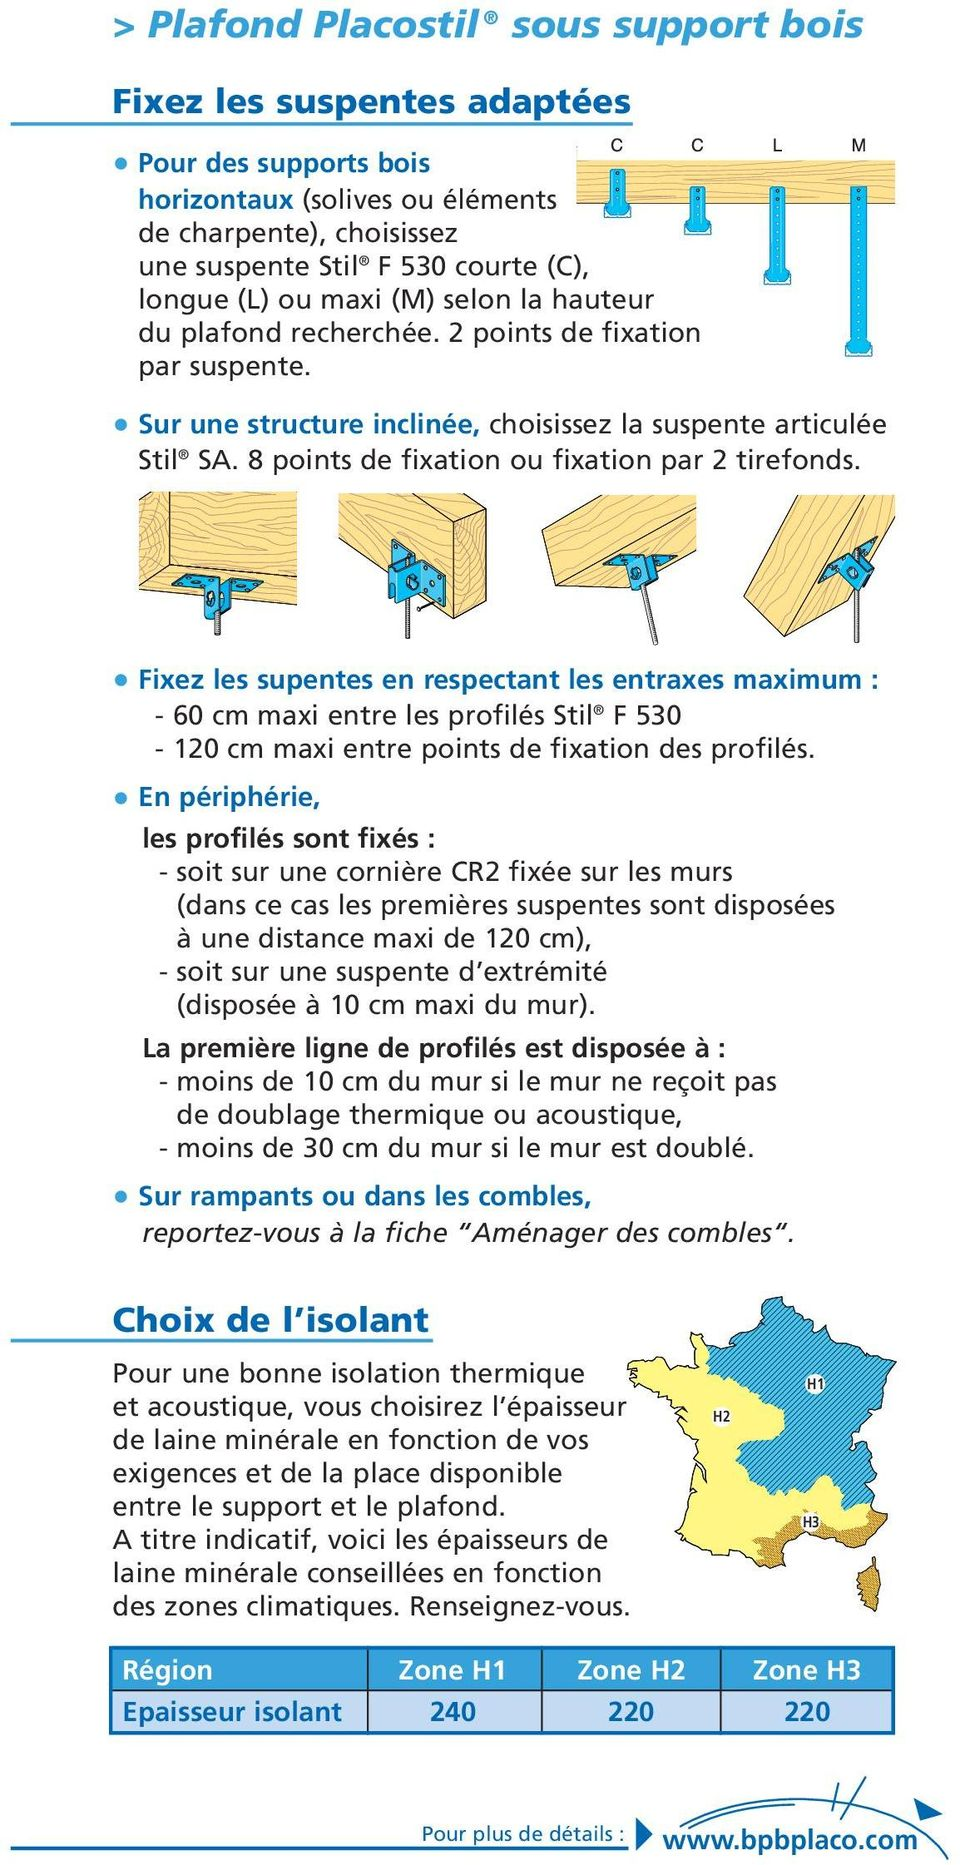 8 points de fixation ou fixation par 2 tirefonds. Fixez les supentes en respectant les entraxes maximum : - 60 cm maxi entre les profilés Stil F 530-120 cm maxi entre points de fixation des profilés.